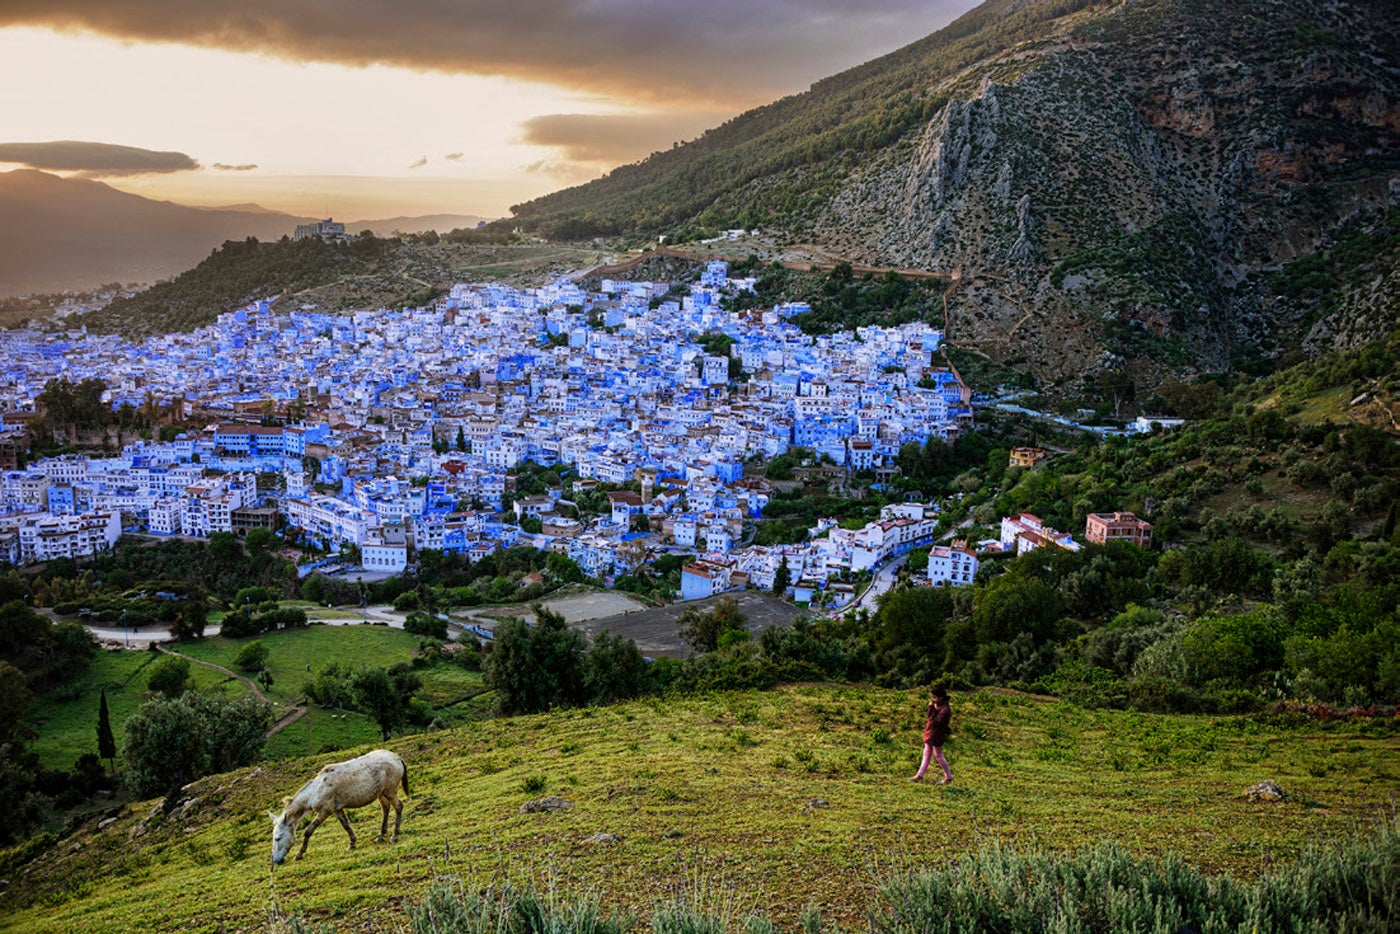 Steve McCurry 'Hilltop View of Chefchaouen'